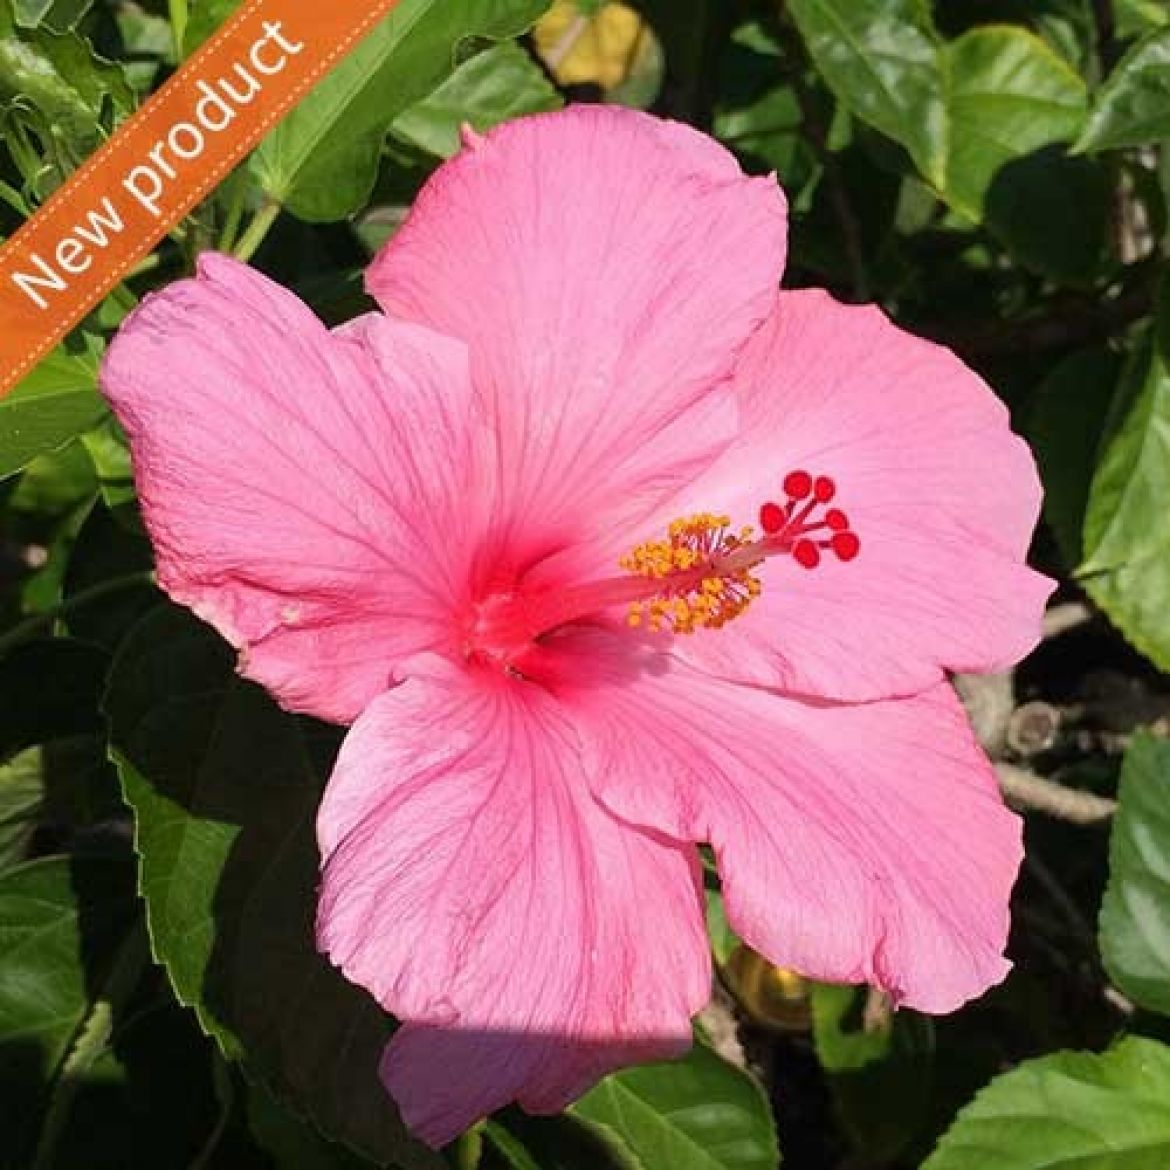 Fantasia Dainty Pink - My Plant Journal - An online diary for plant